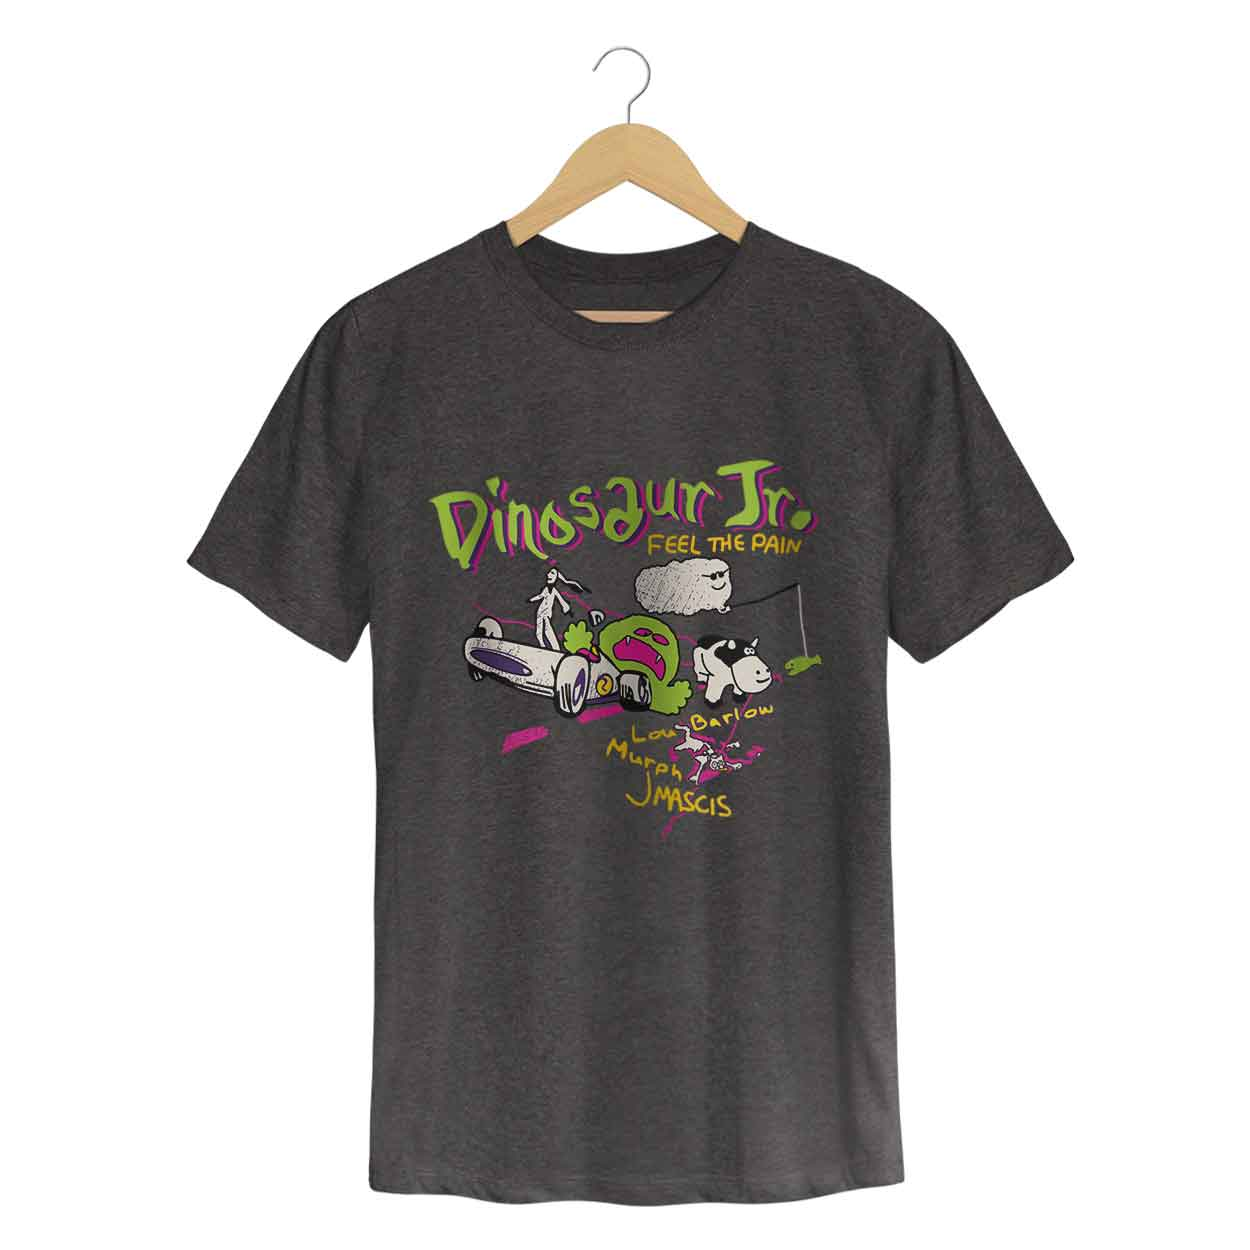 Camiseta Feel The Pain - Dinosaur Jr. - Masculino